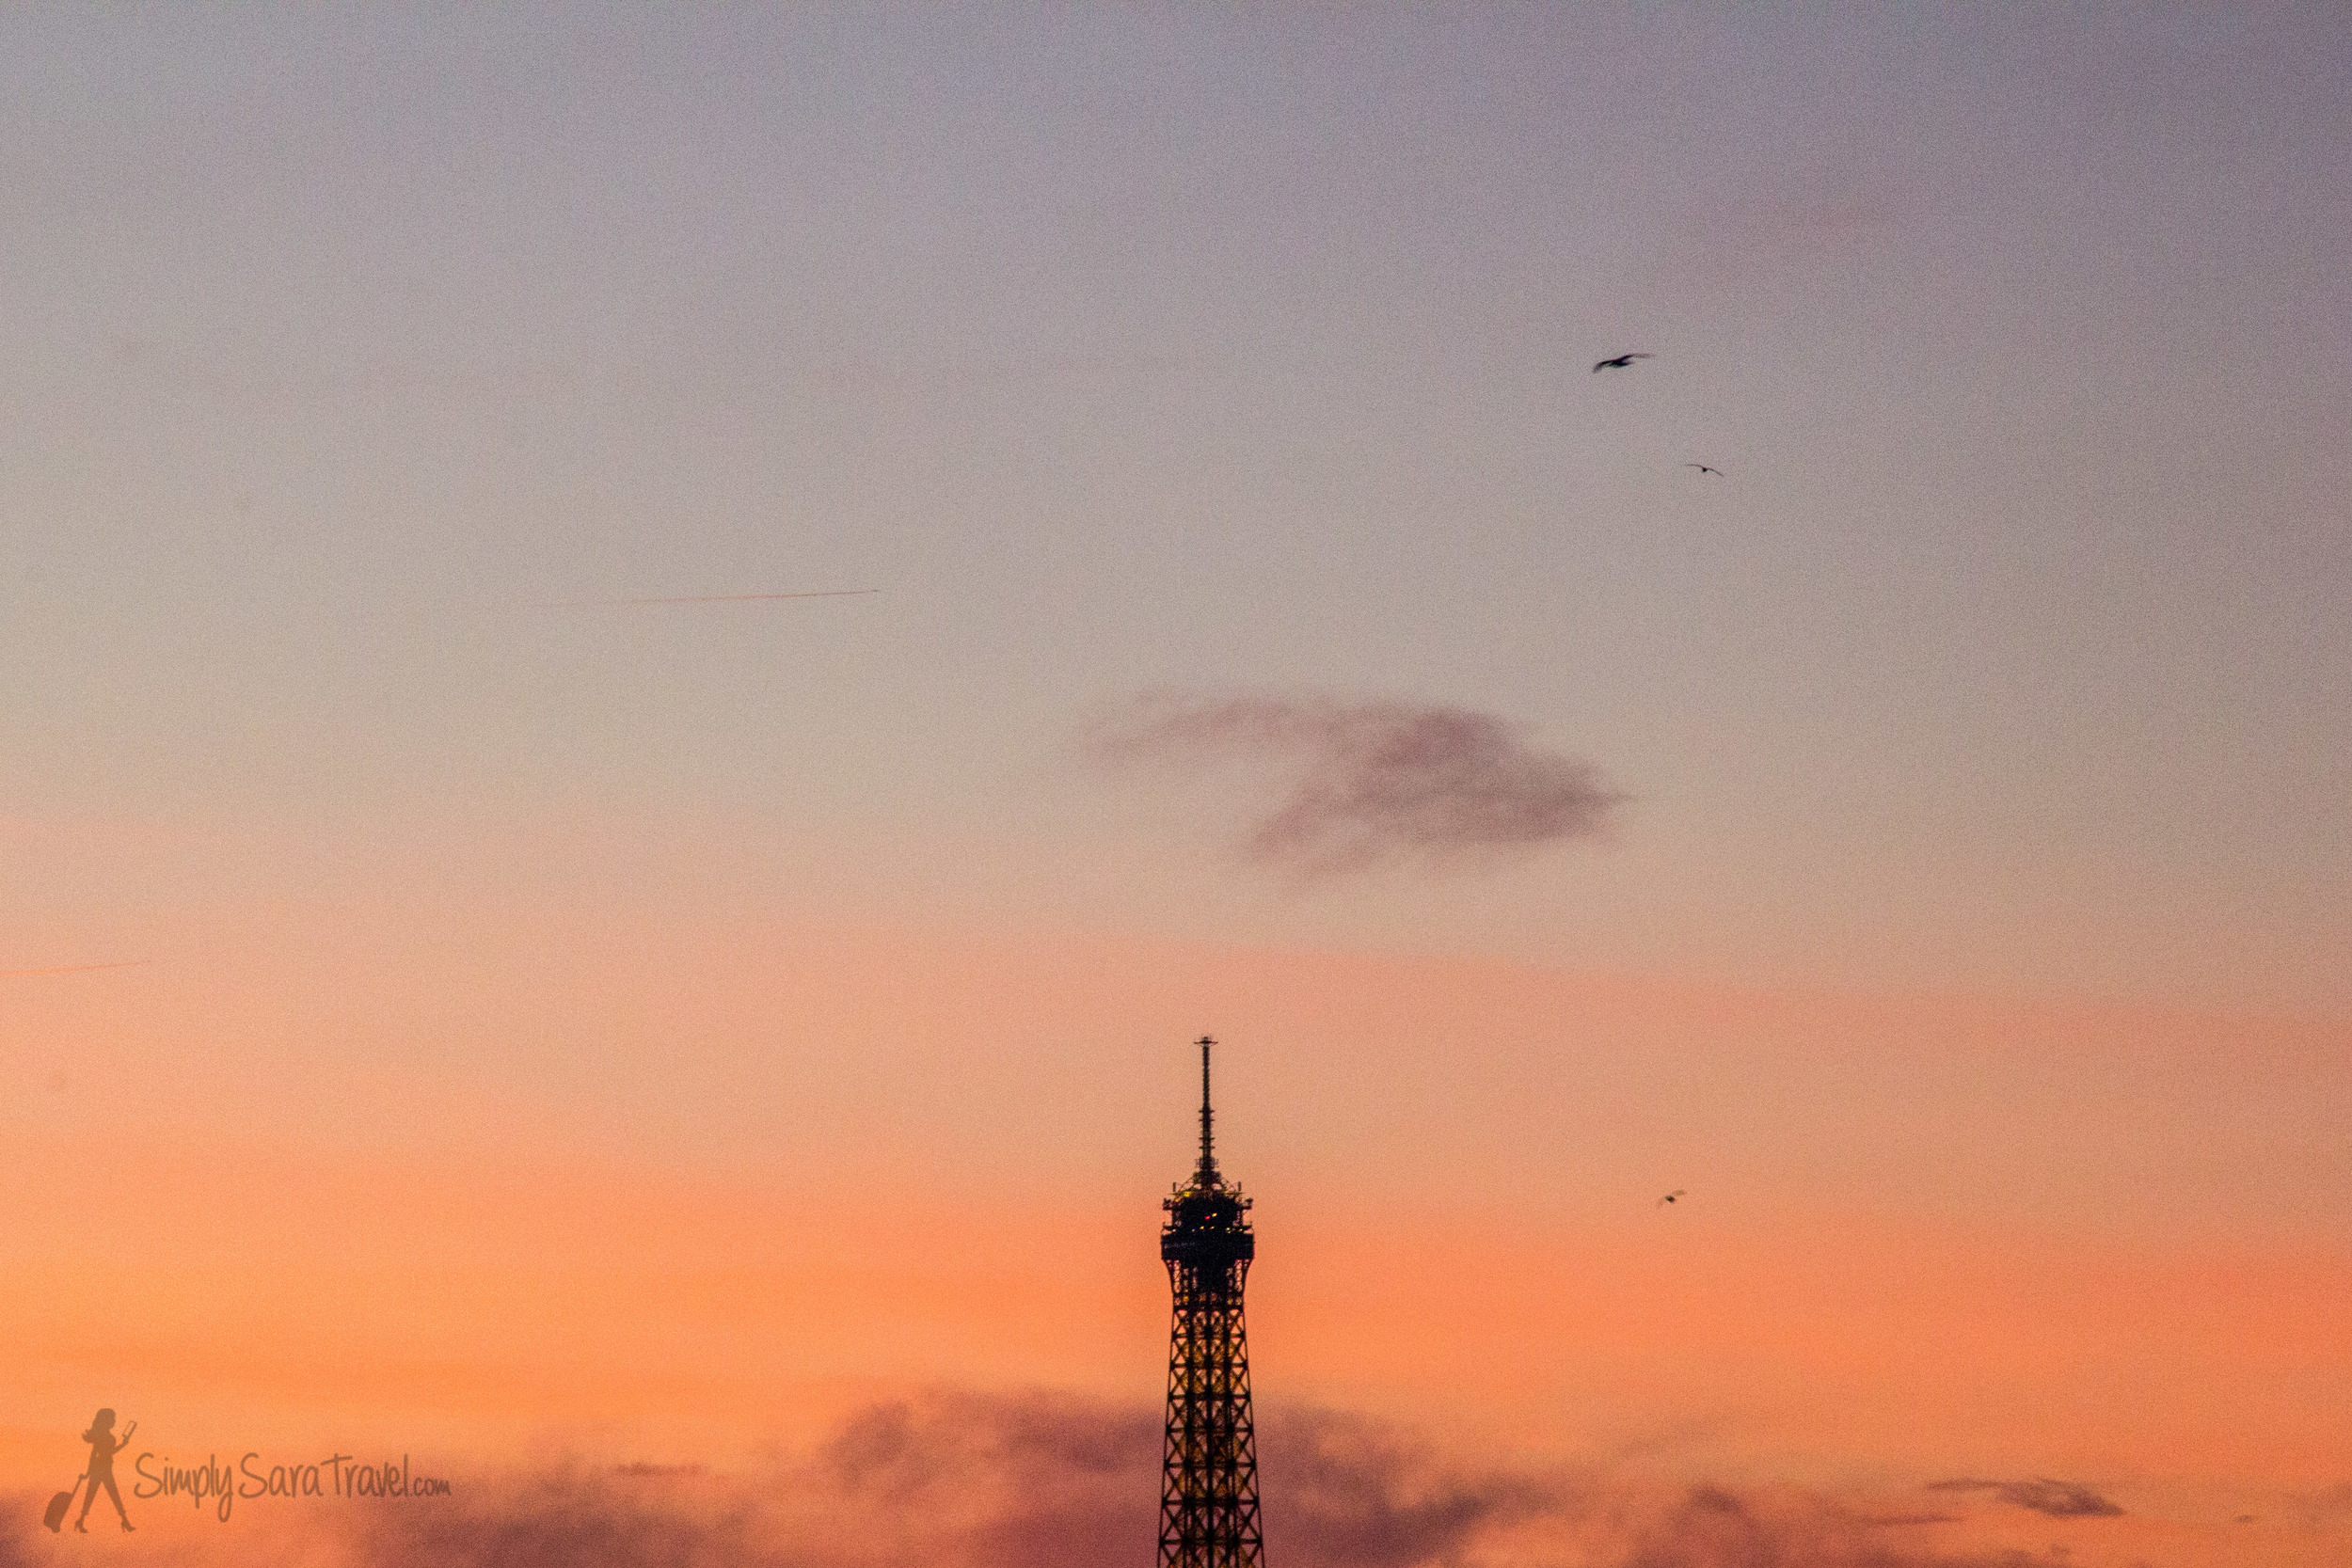 Sunset and the tip pf the Eiffel Tower, Paris, France